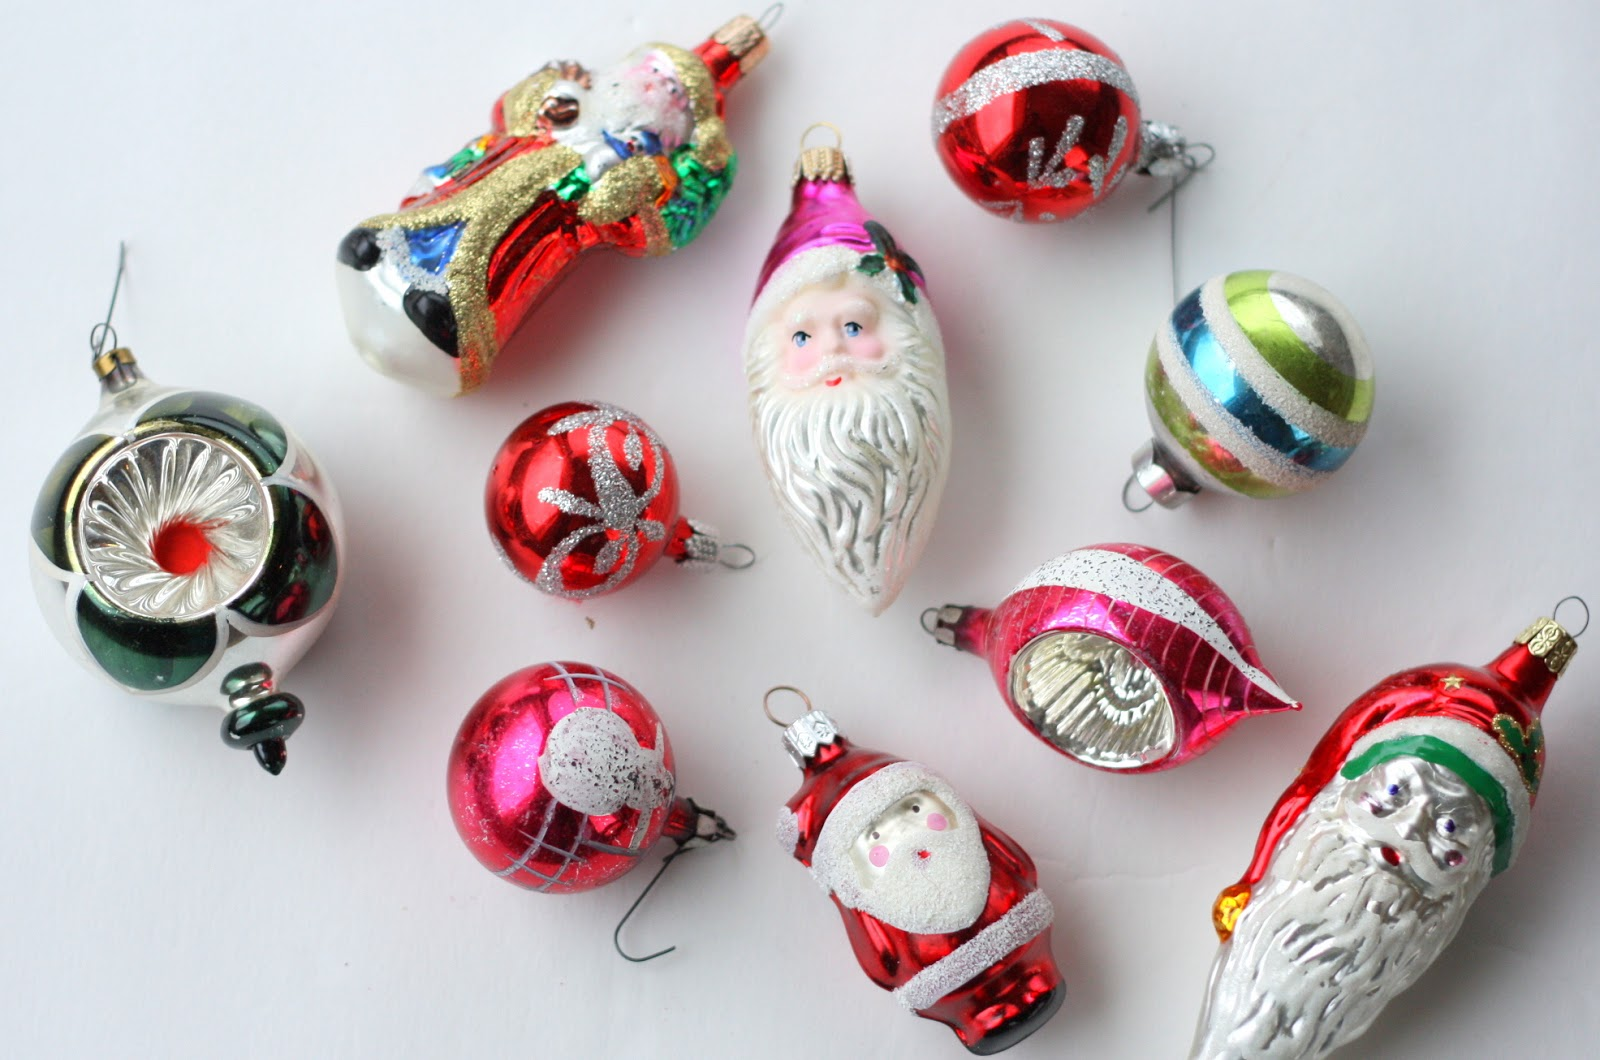 Christmas ornaments glass - Vintage Christmas Glass Ornaments And Illustrations